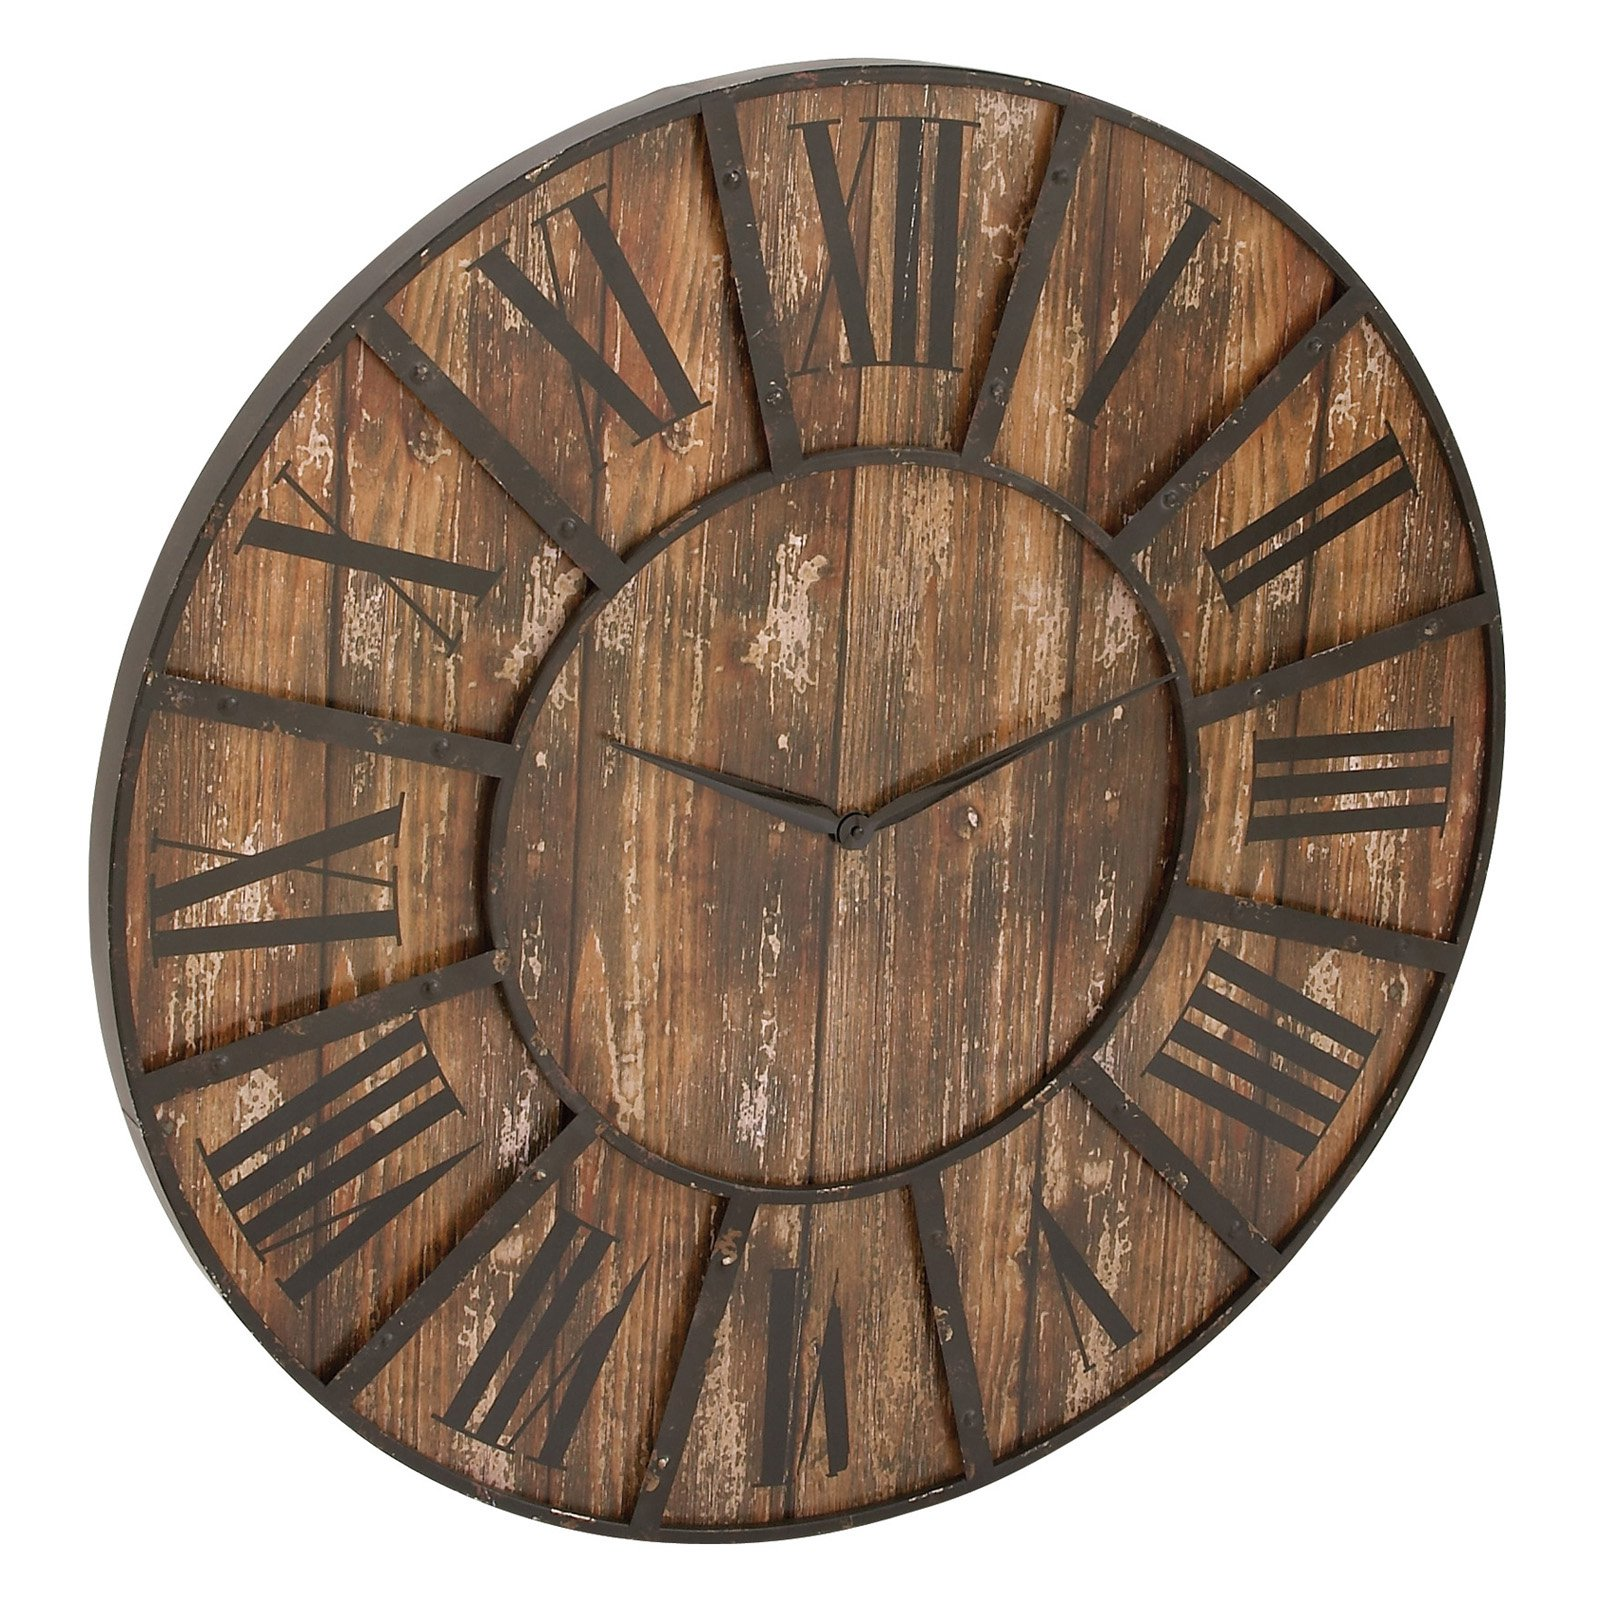 Decmode Metal And Wood Wall Clock 36 Diam In In 2019